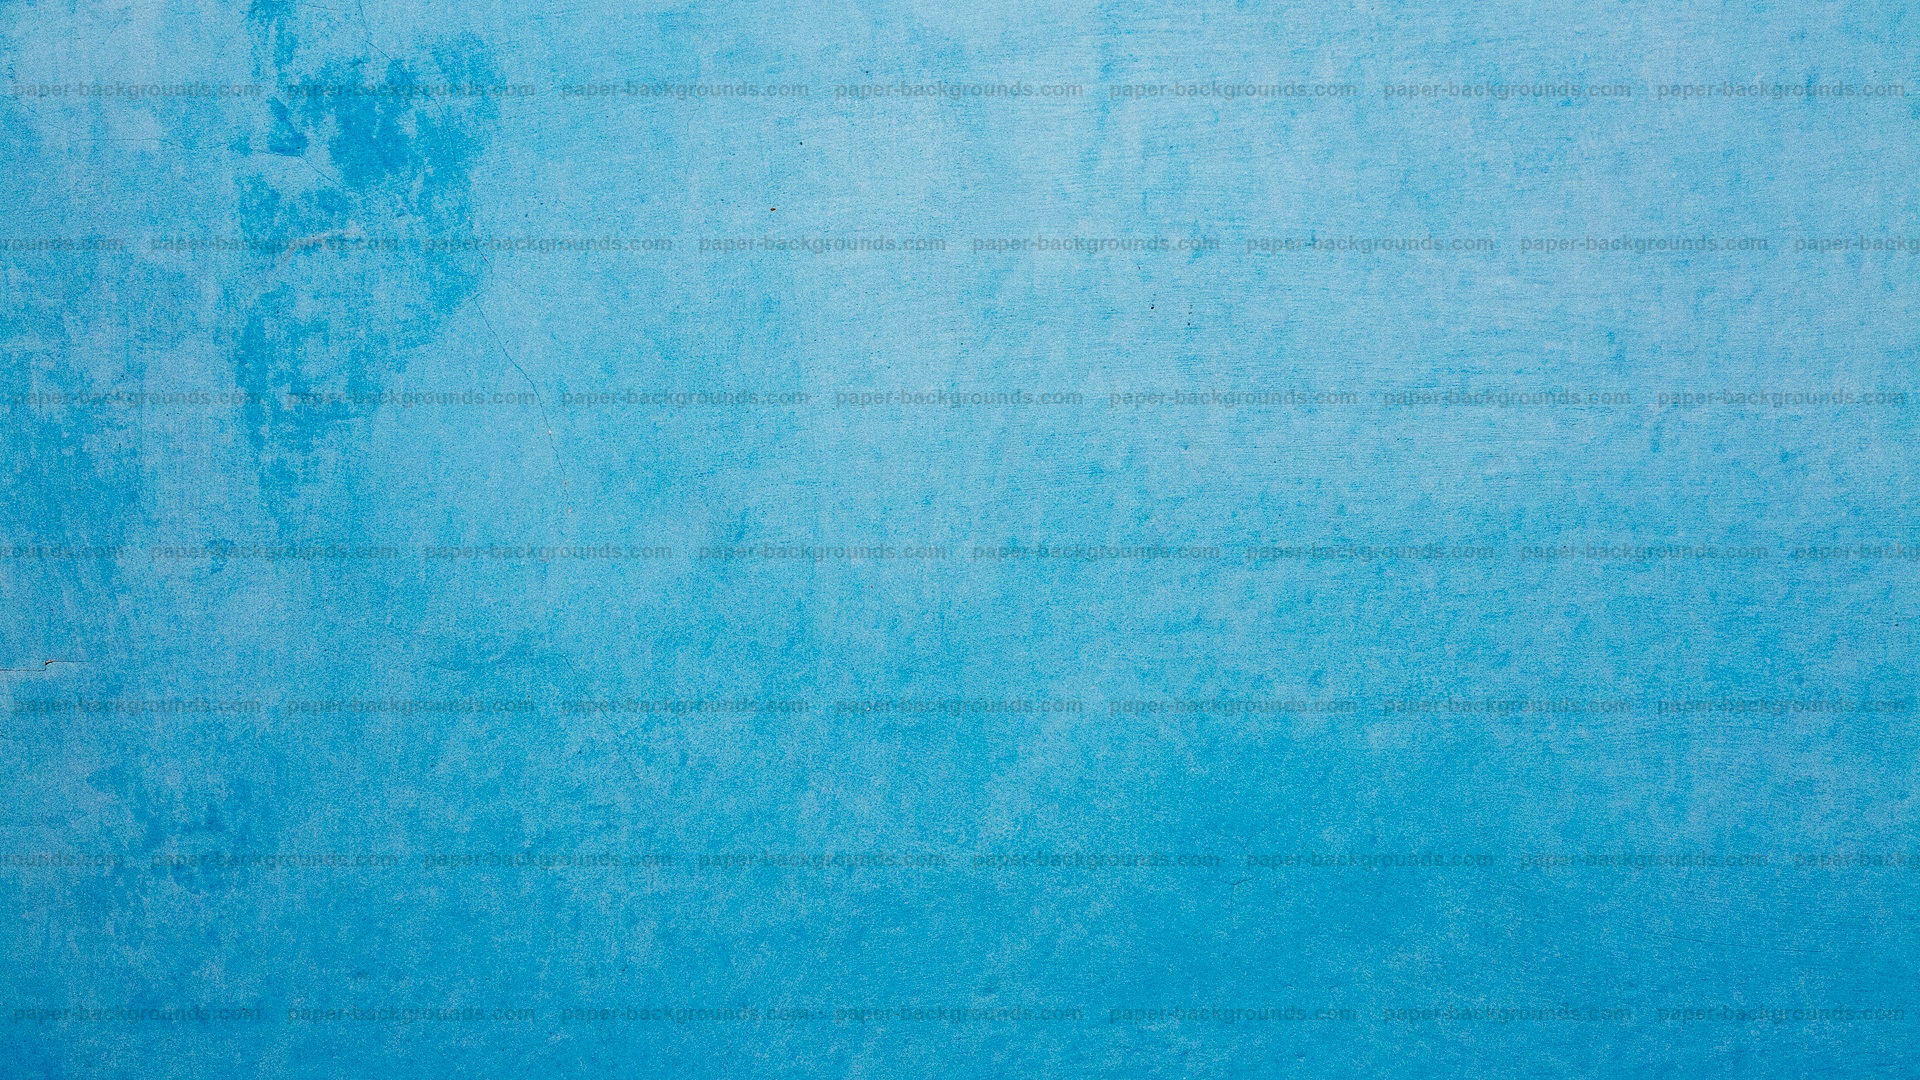 Vintage Blue Painted Wall Background HD